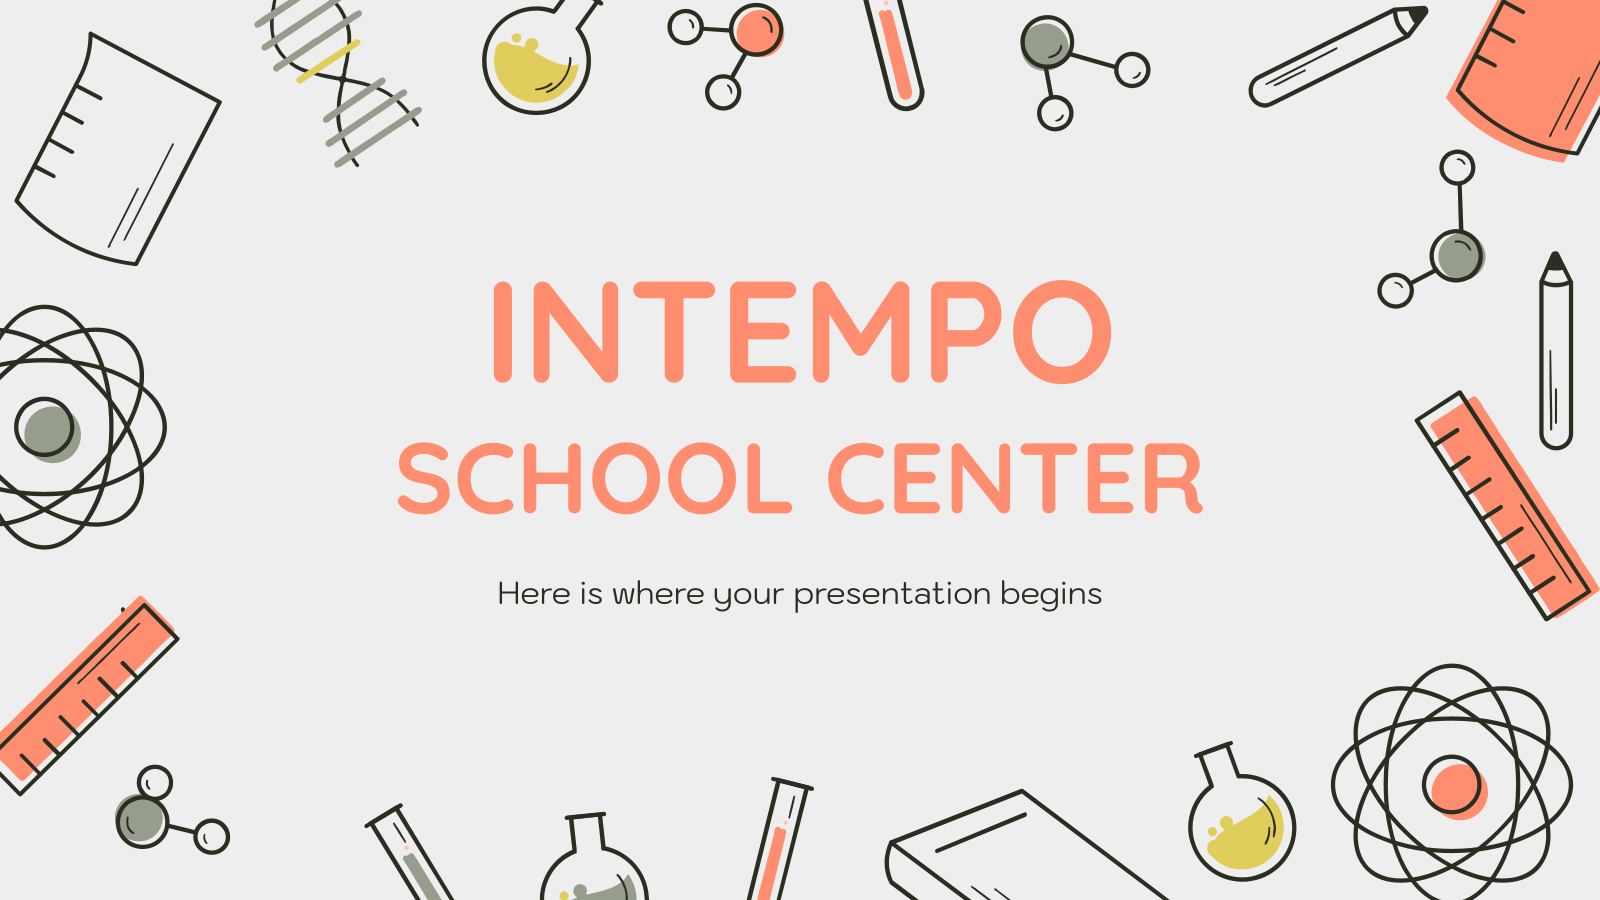 Intempo School Center presentation template